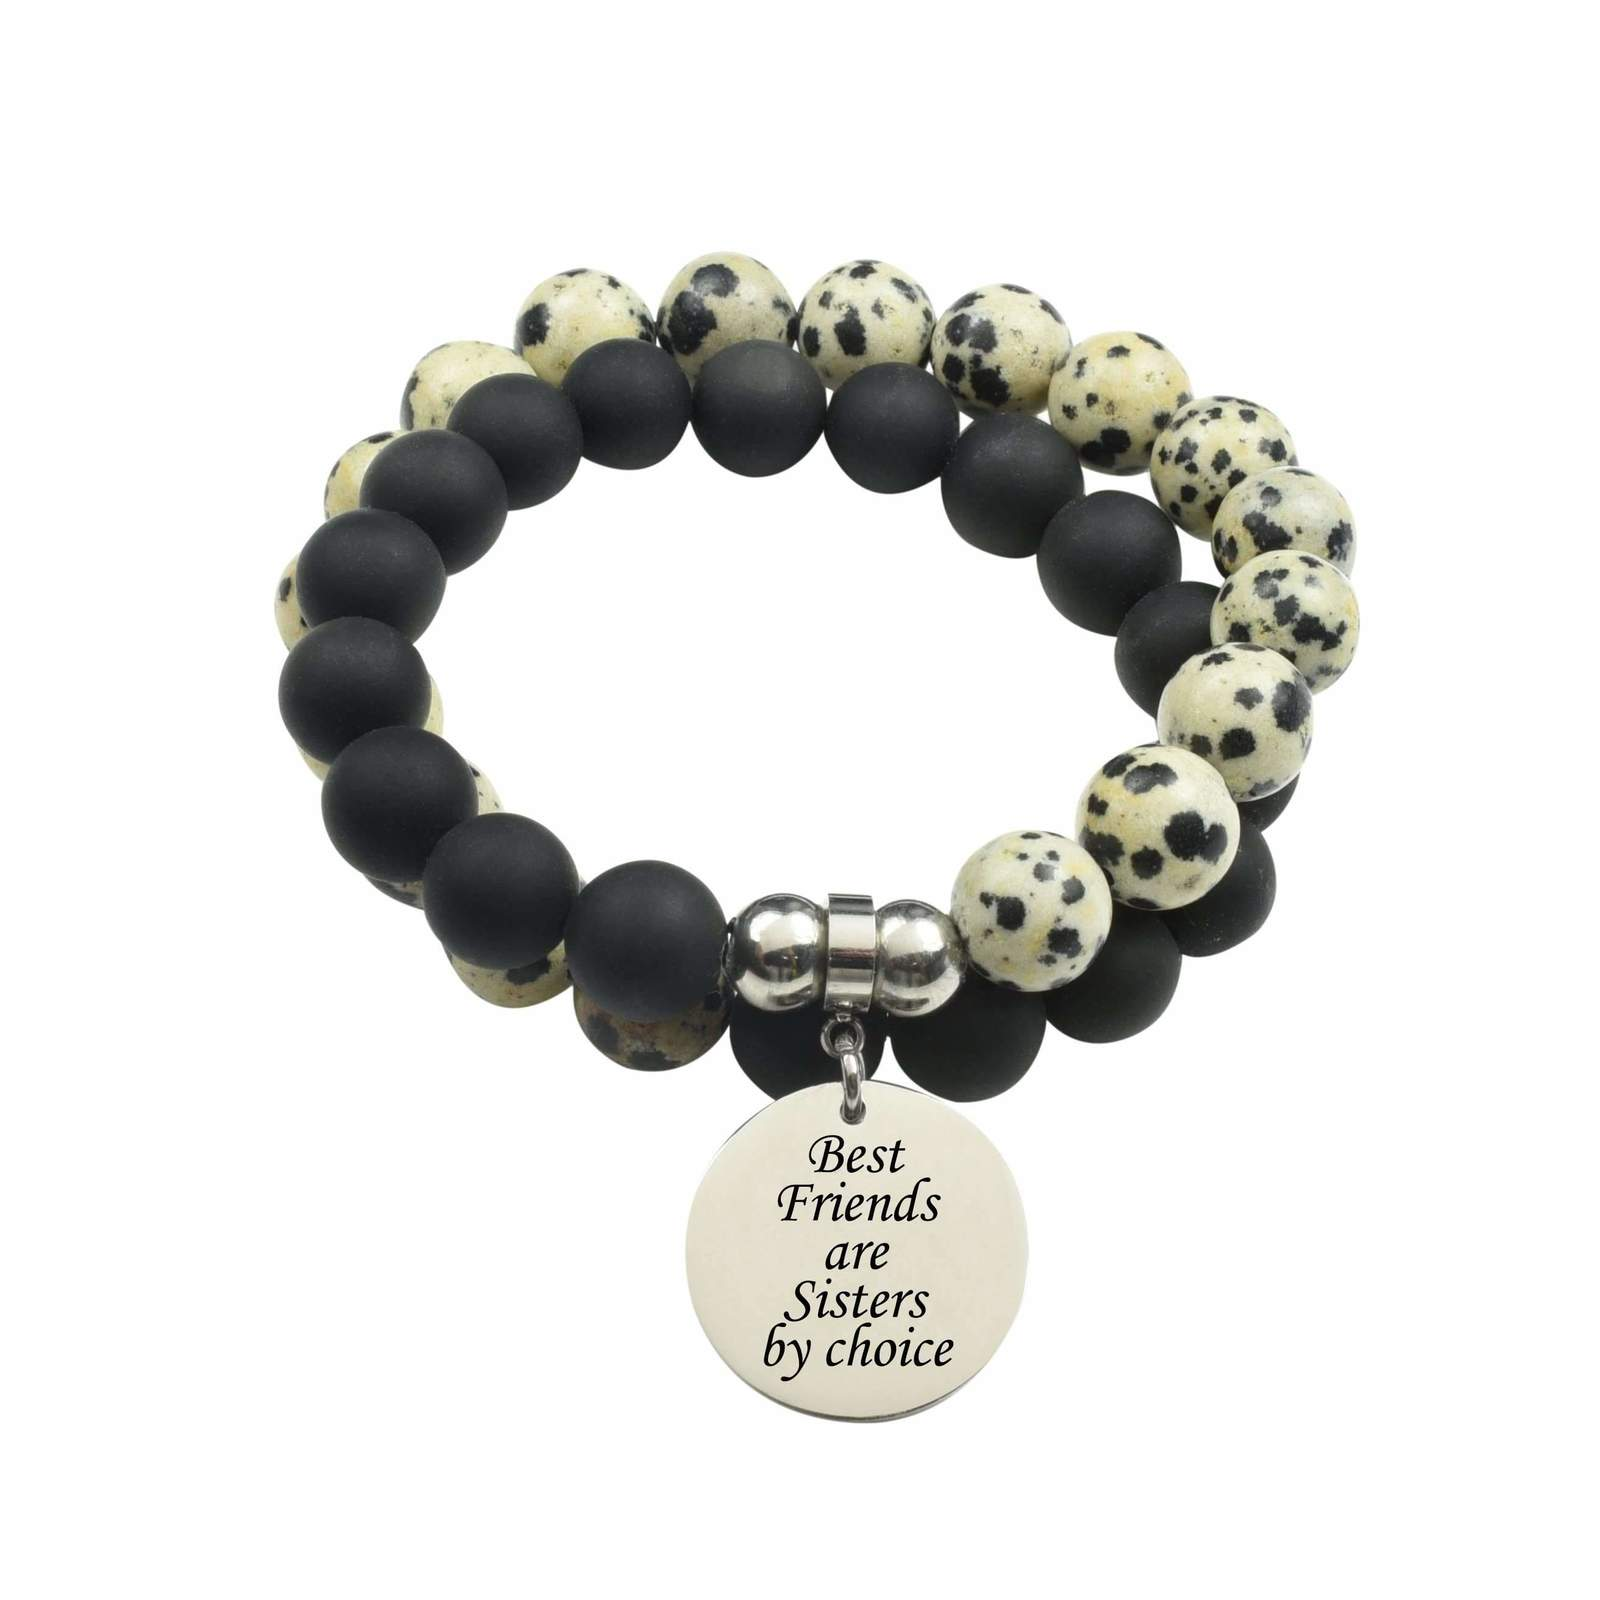 Primary image for Genuine 10Mm Double Wrap Obsidian Dalmatian Mix Bracelet - Best Friends